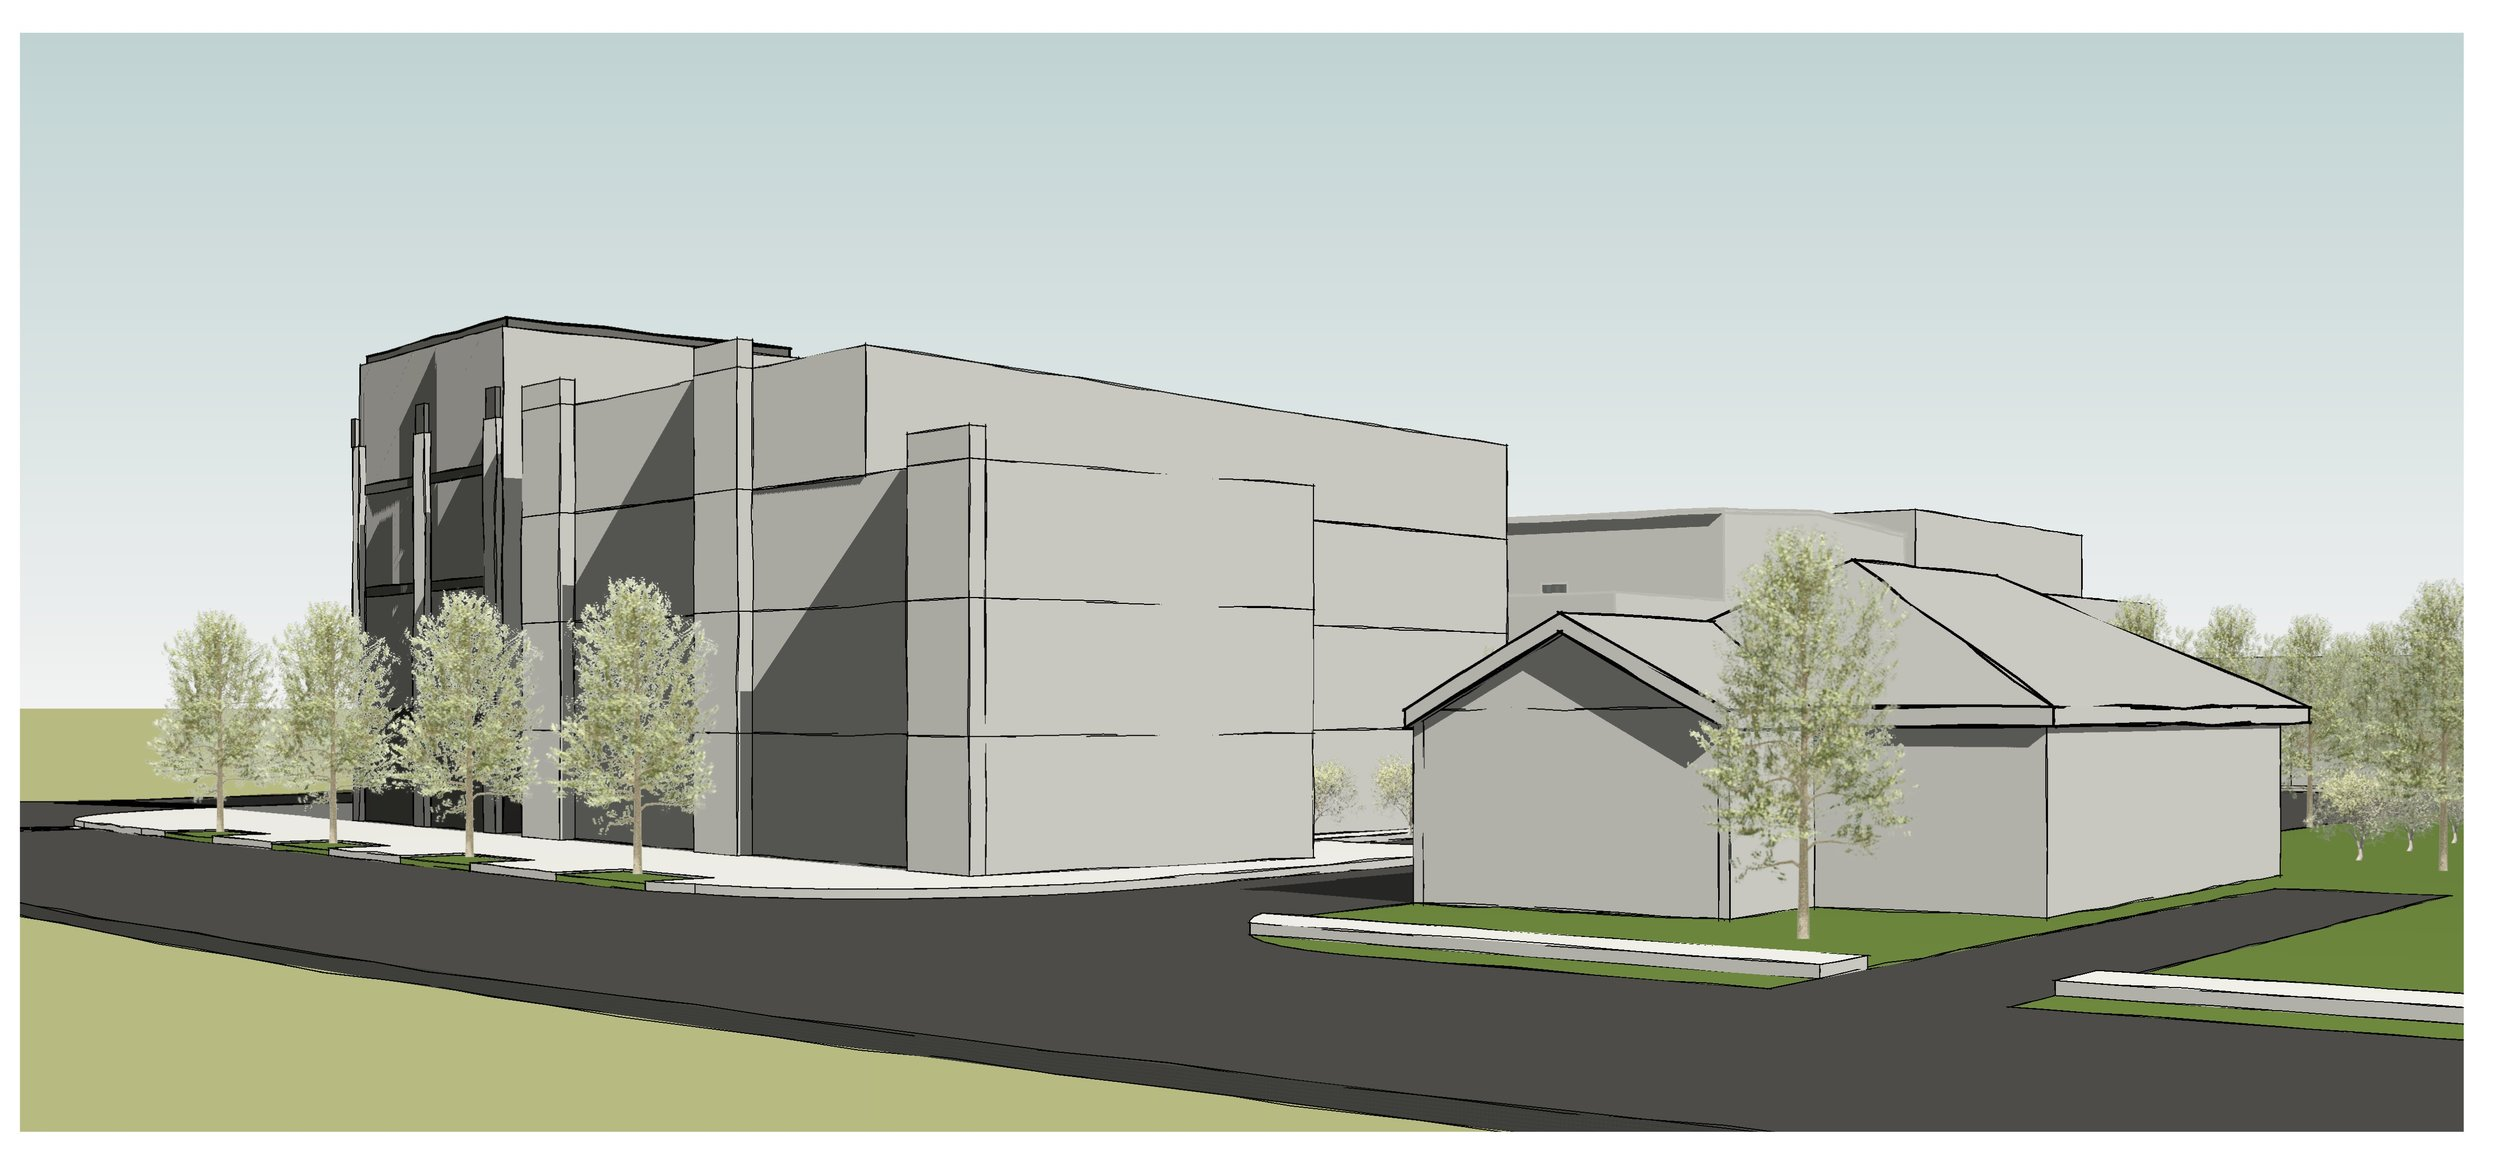 Conceptual massing from Glenwood Ave looking east toward Moreland Ave.